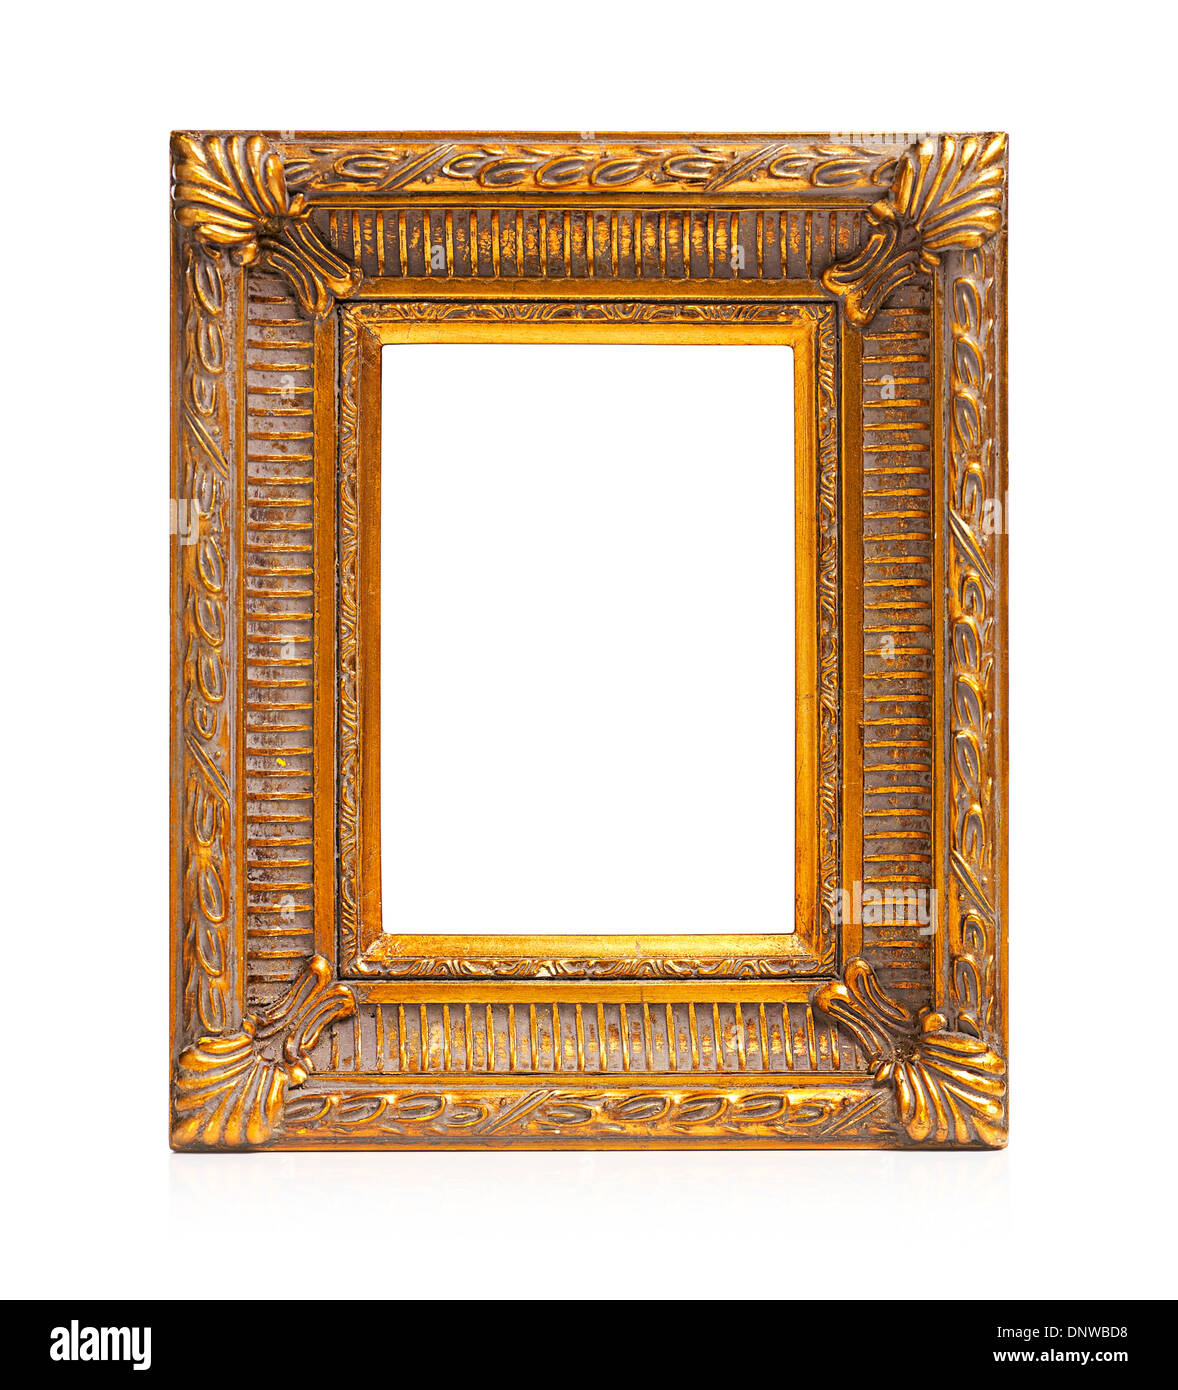 Gold Picture Frame Cut Out Ornate Stockfotos & Gold Picture Frame ...